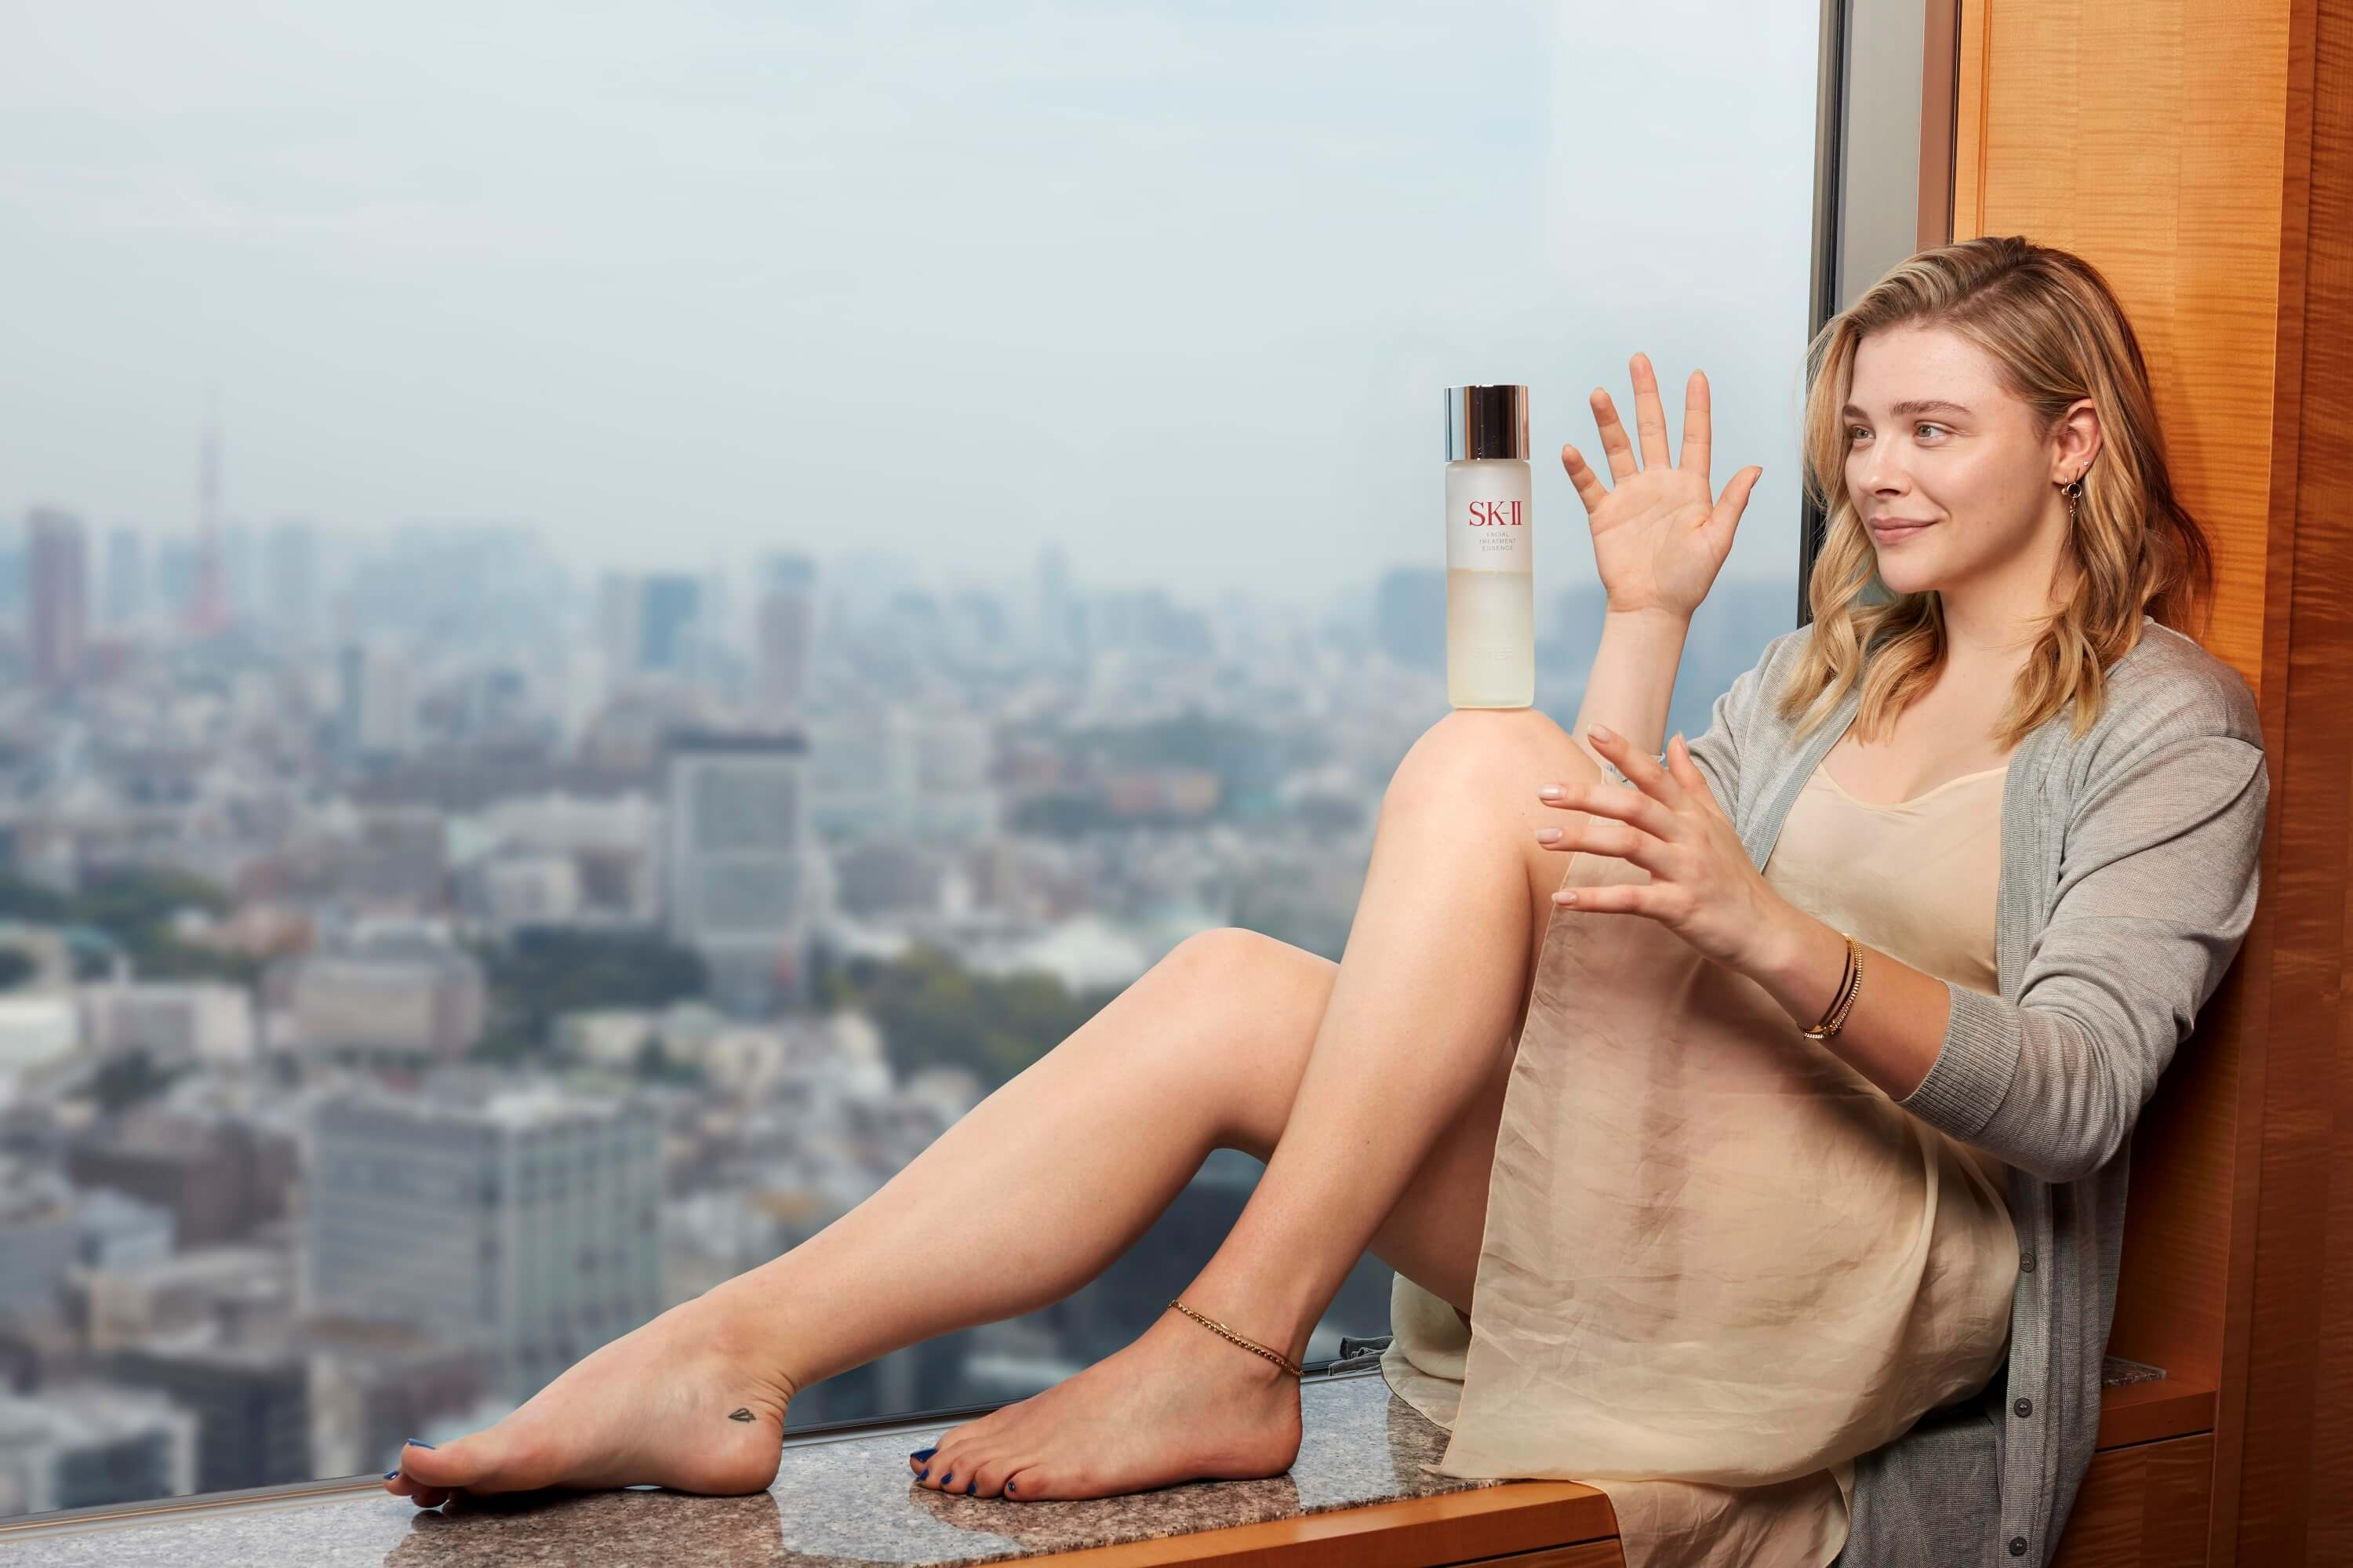 Chloë Grace Moretz awesome photo